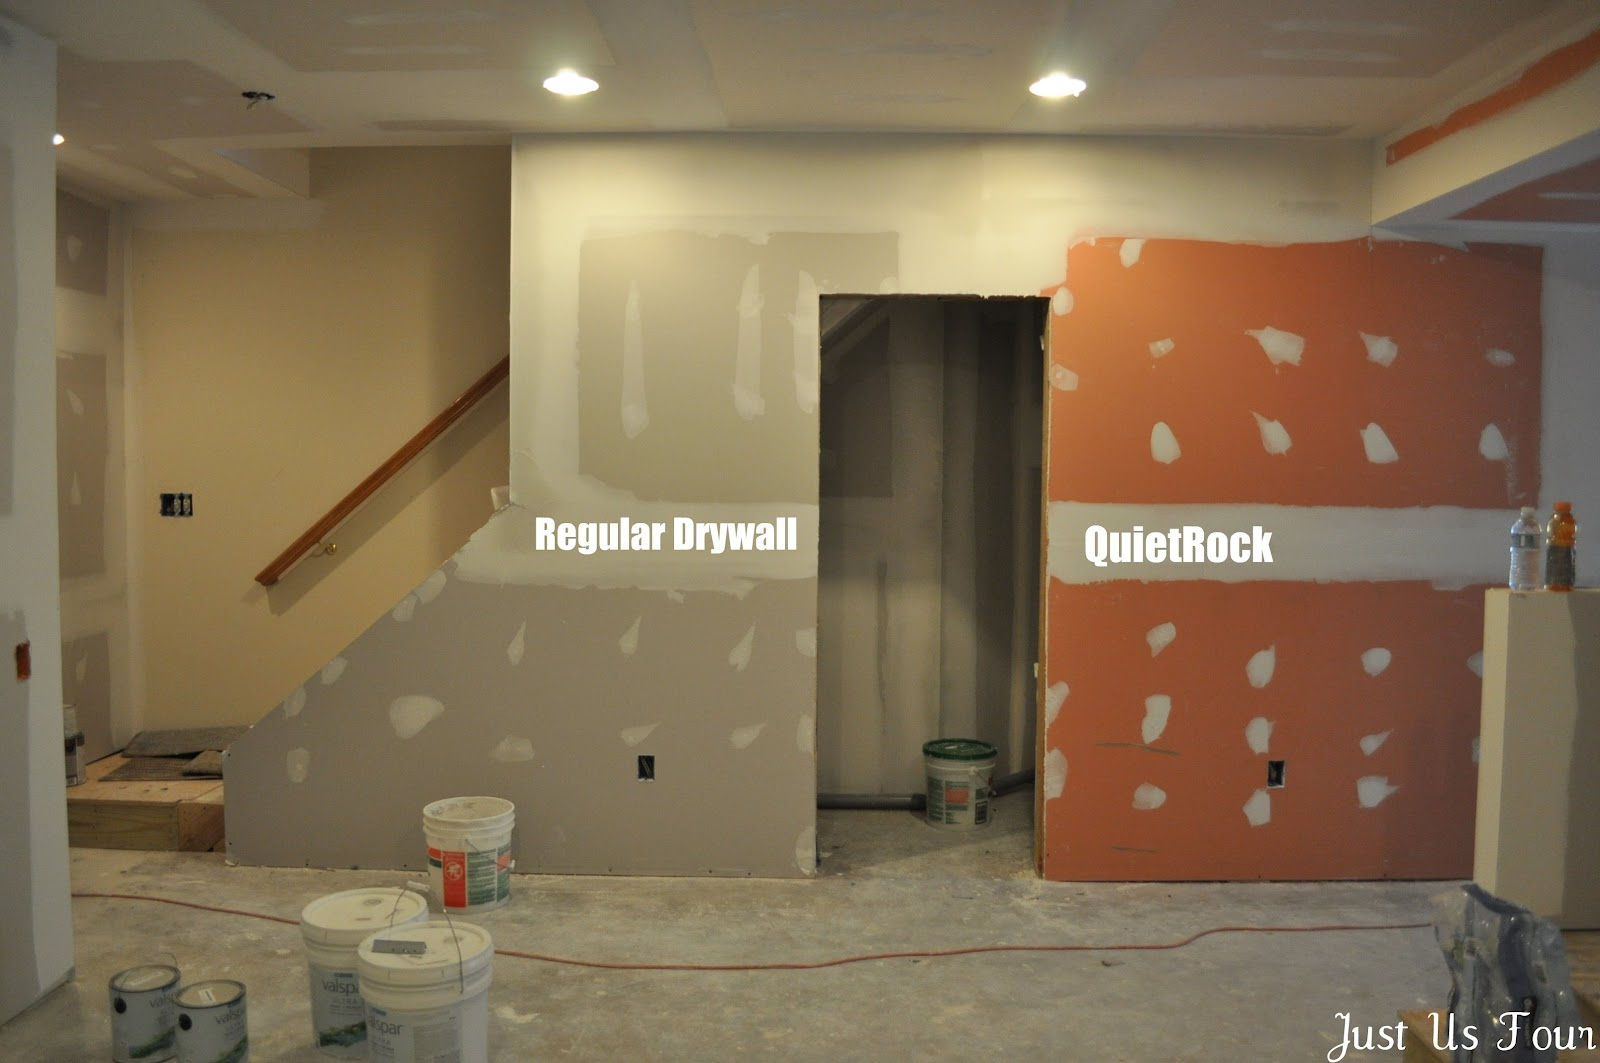 Basement reno updates galore my suburban kitchen - What type of drywall to use in bathroom ...